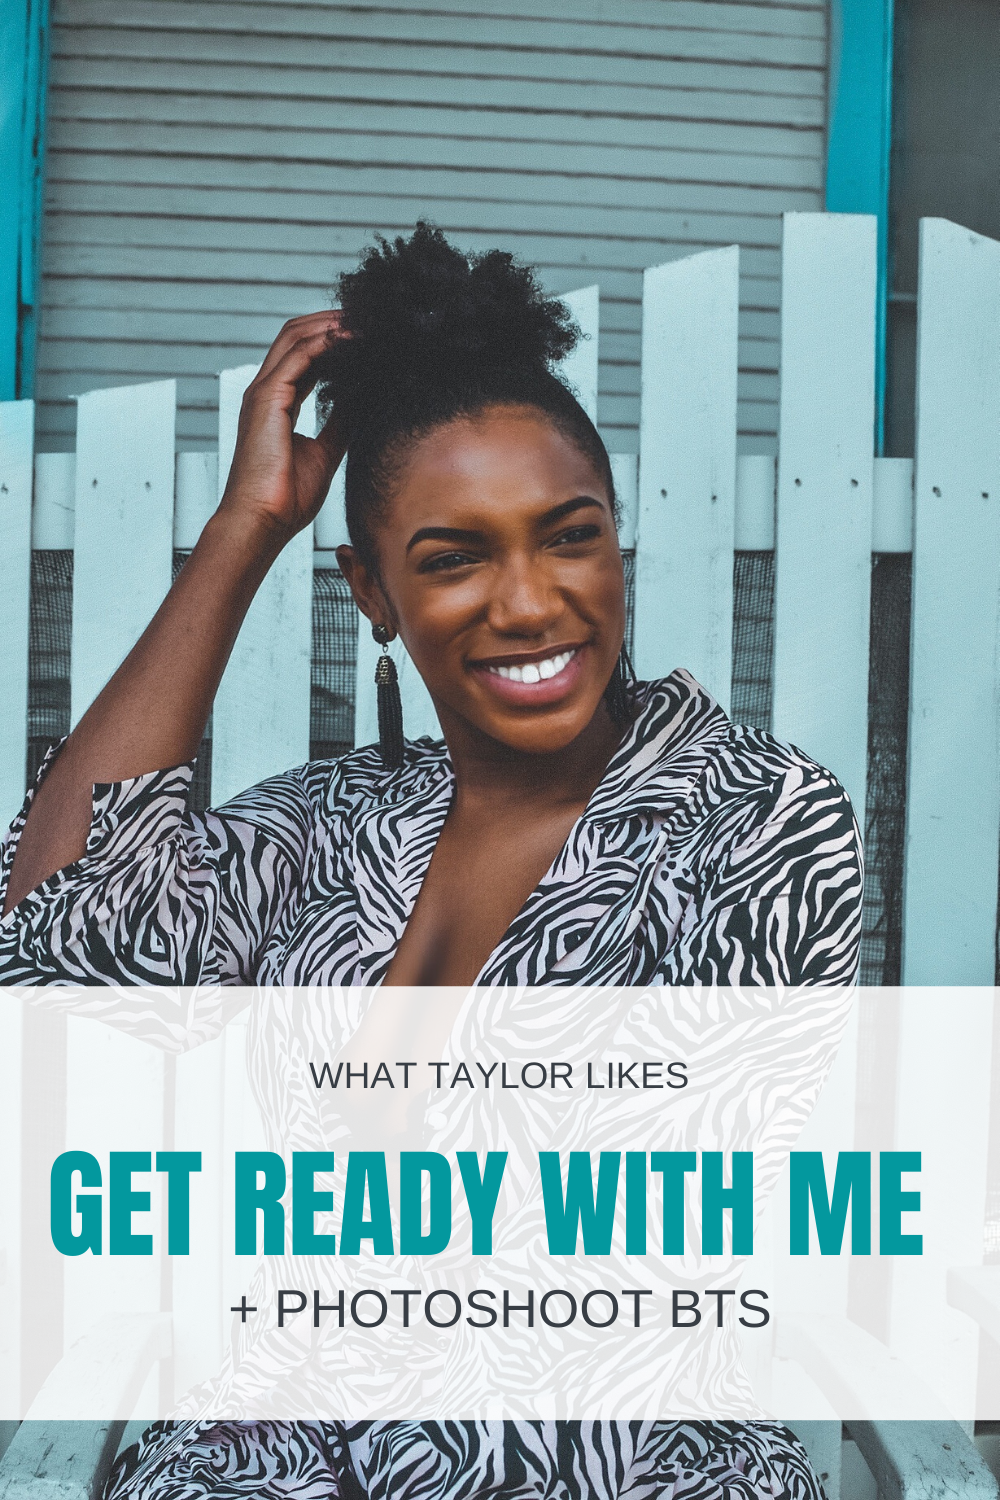 Get Ready With Me + Photoshoot BTS - What Taylor Likes